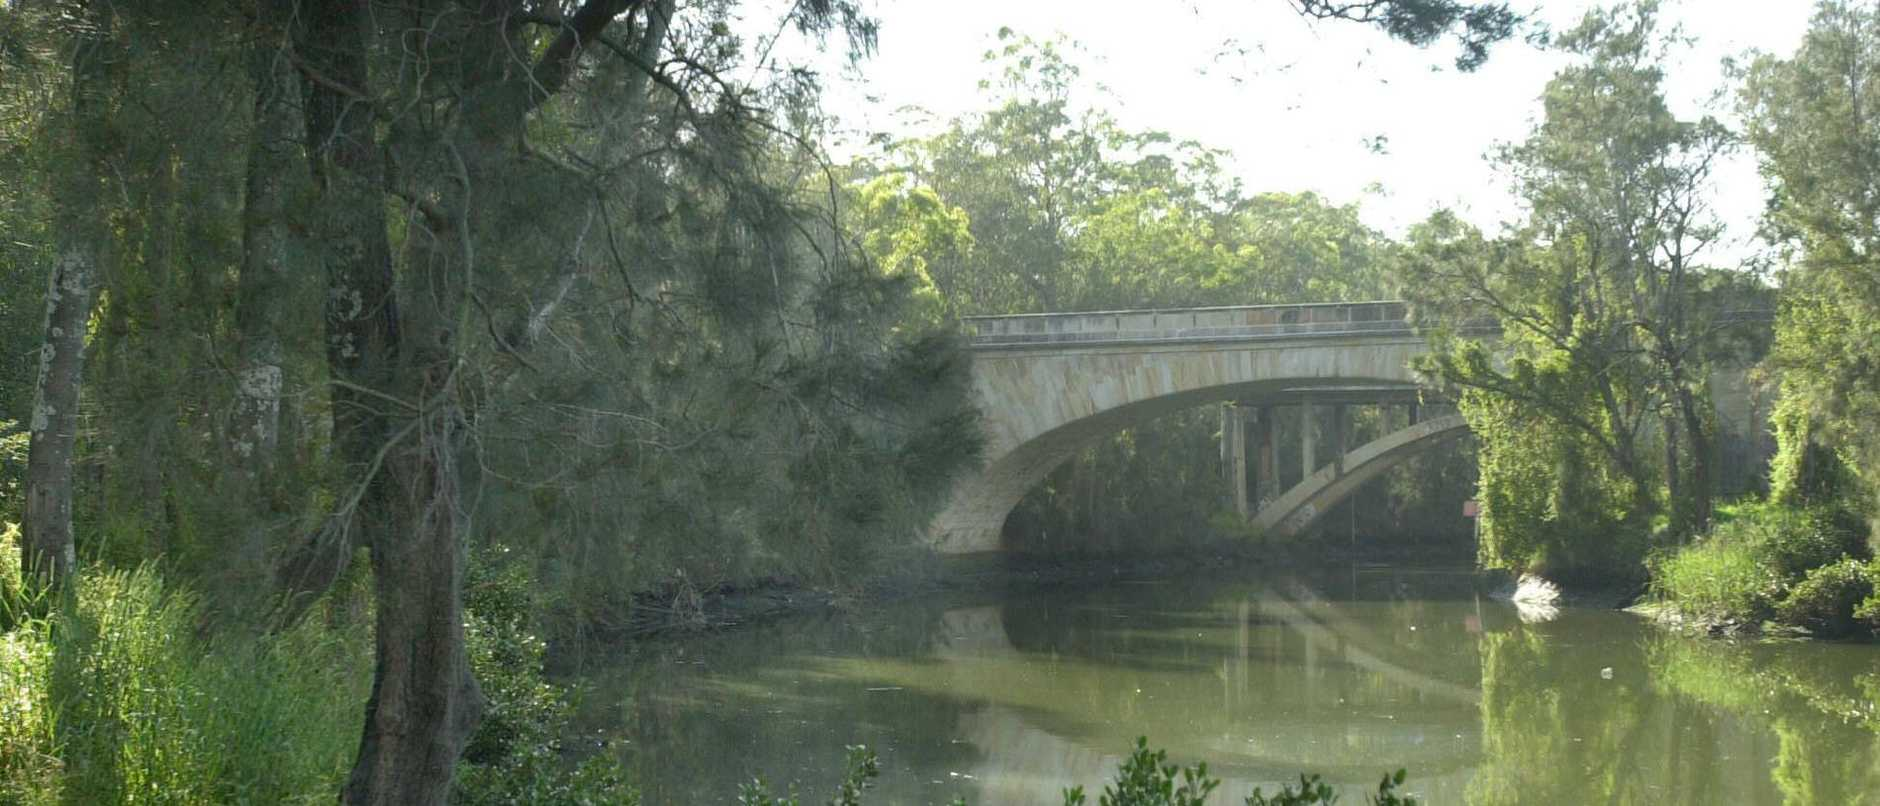 The crime scene where Chloe's body was found in 2003. Picture: John Grainger